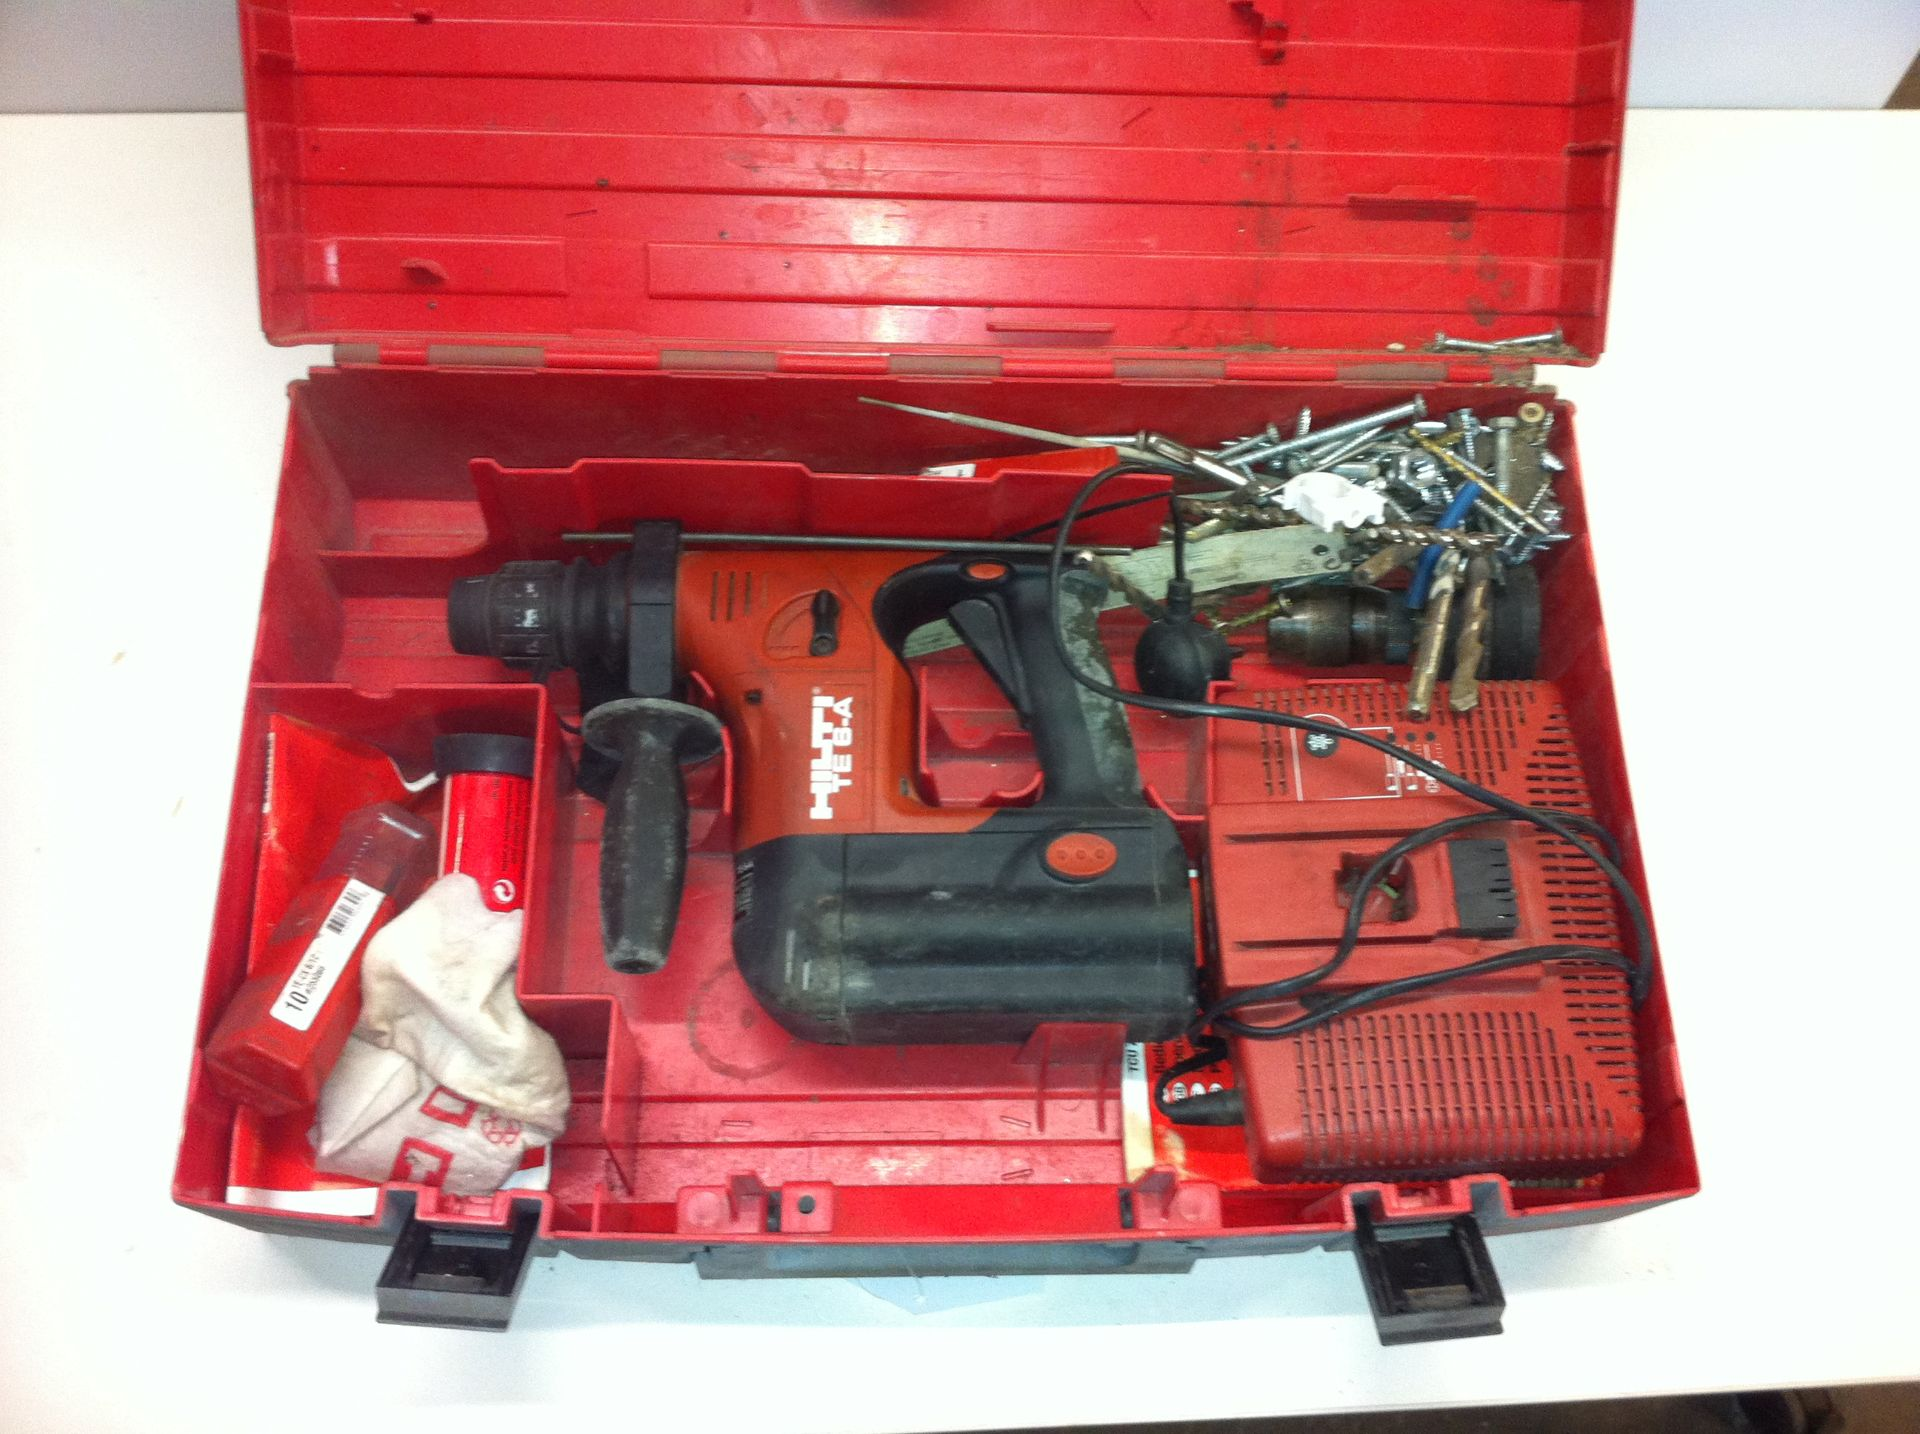 Lot 127 - Hilti Battery Operated Hammer Drill